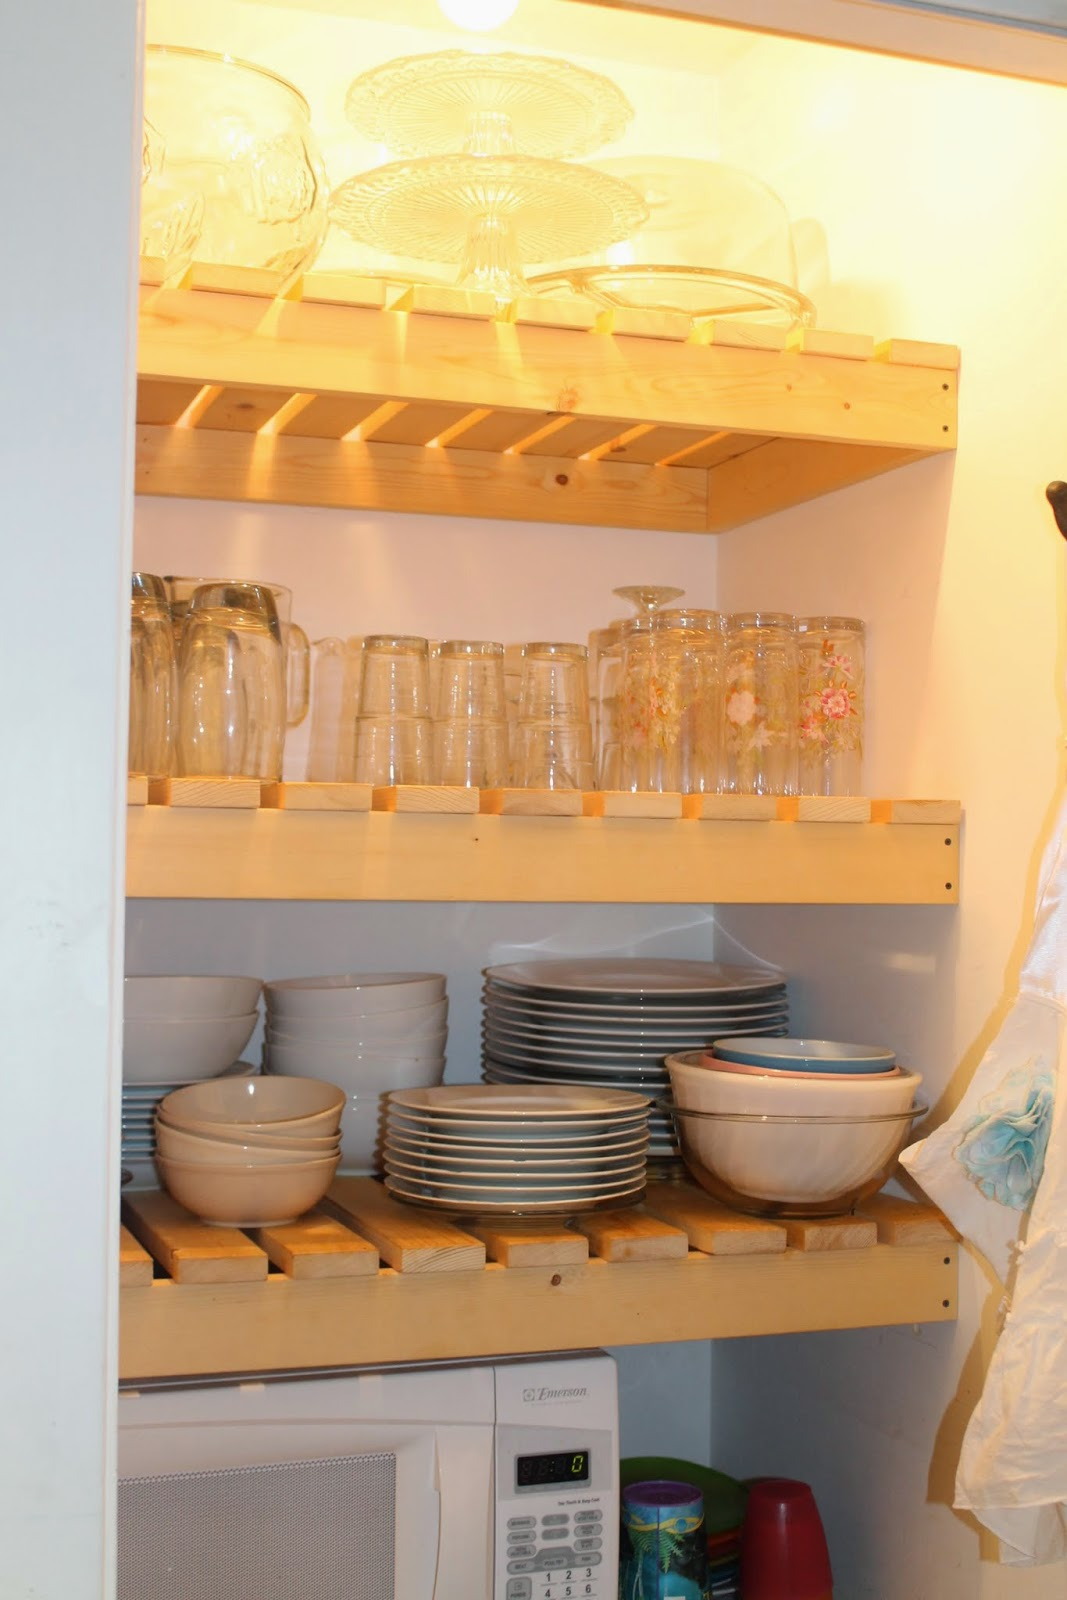 Marvelous photograph of diy wood slat pantry shelves with dishes Girl Meets Carpenter on  with #C38108 color and 1067x1600 pixels